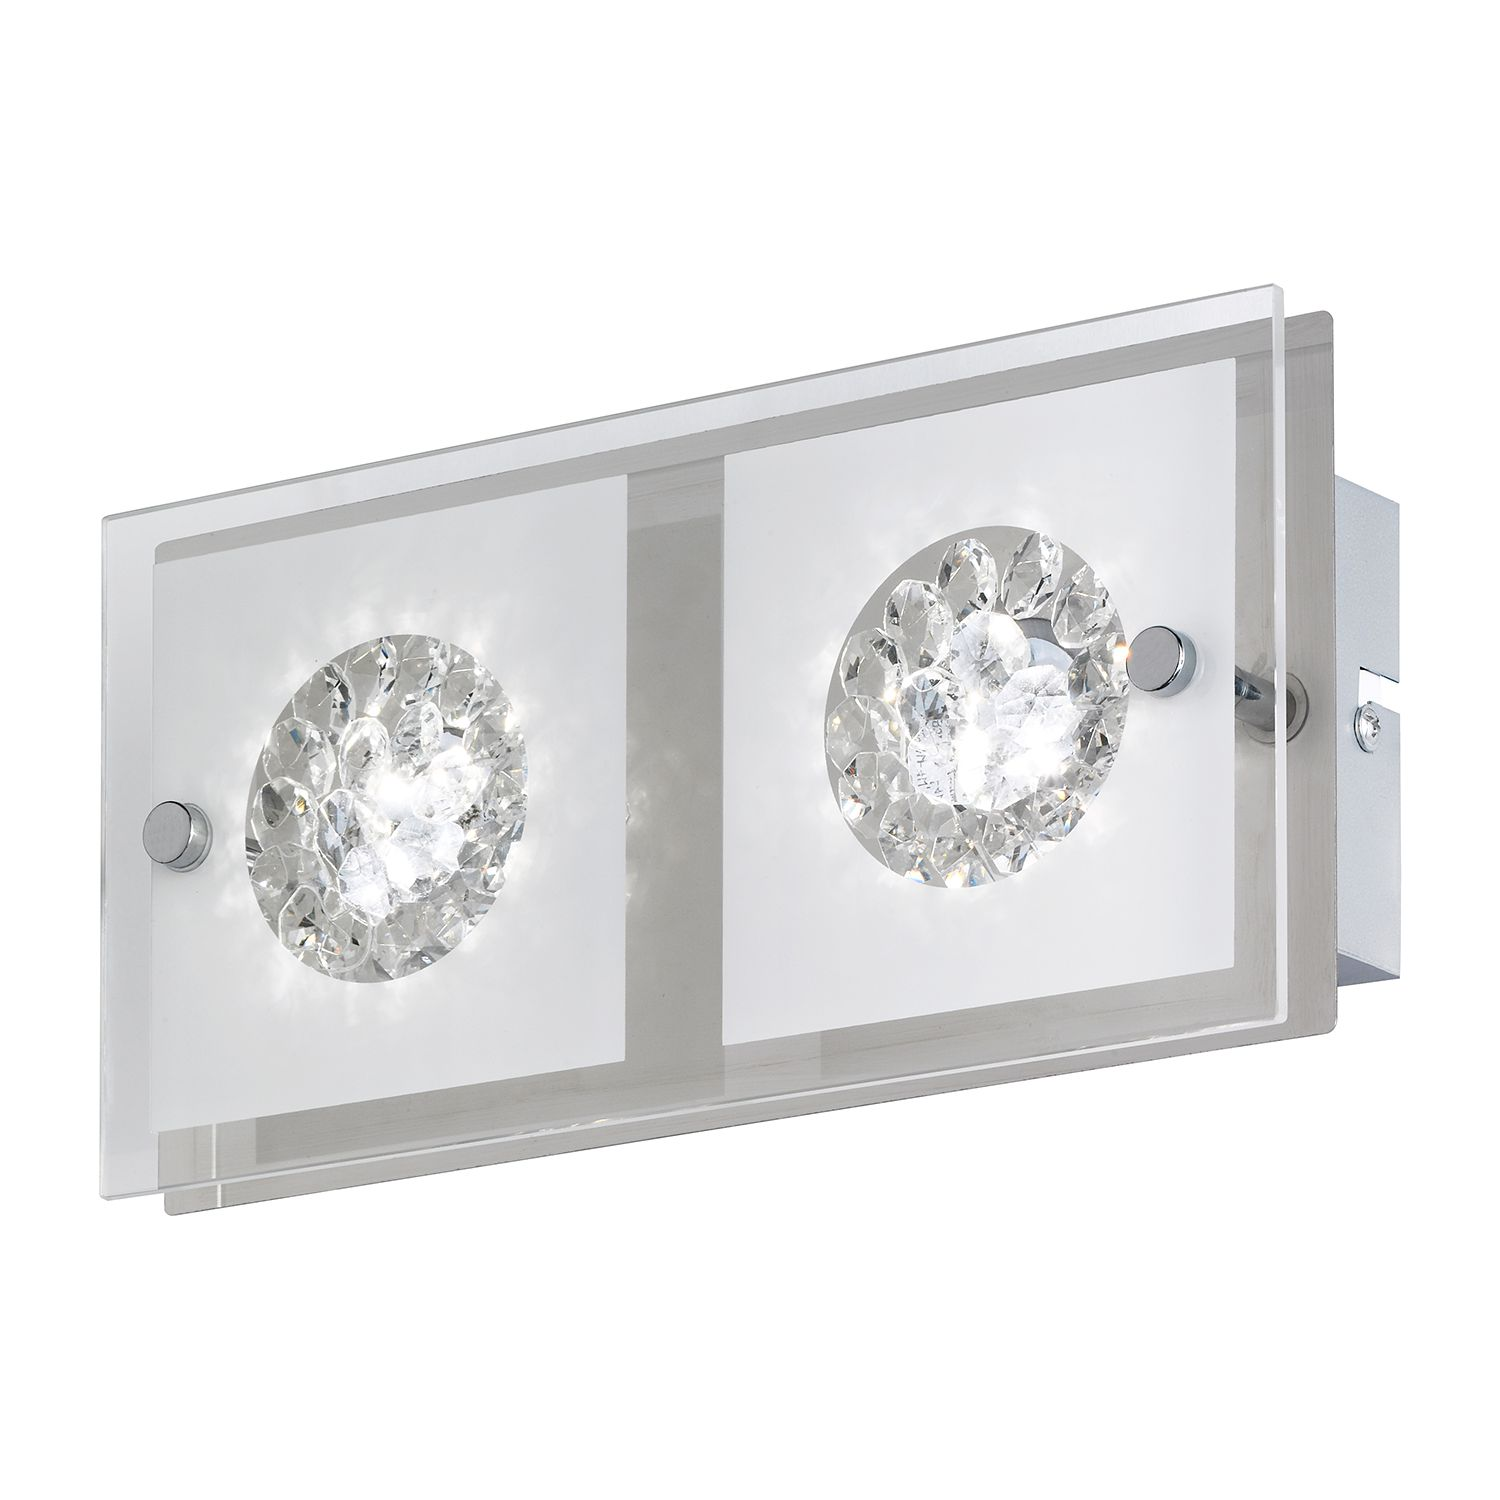 LED-Wandleuchte Reims ● Metall / Glas ● 2- Wofi A+